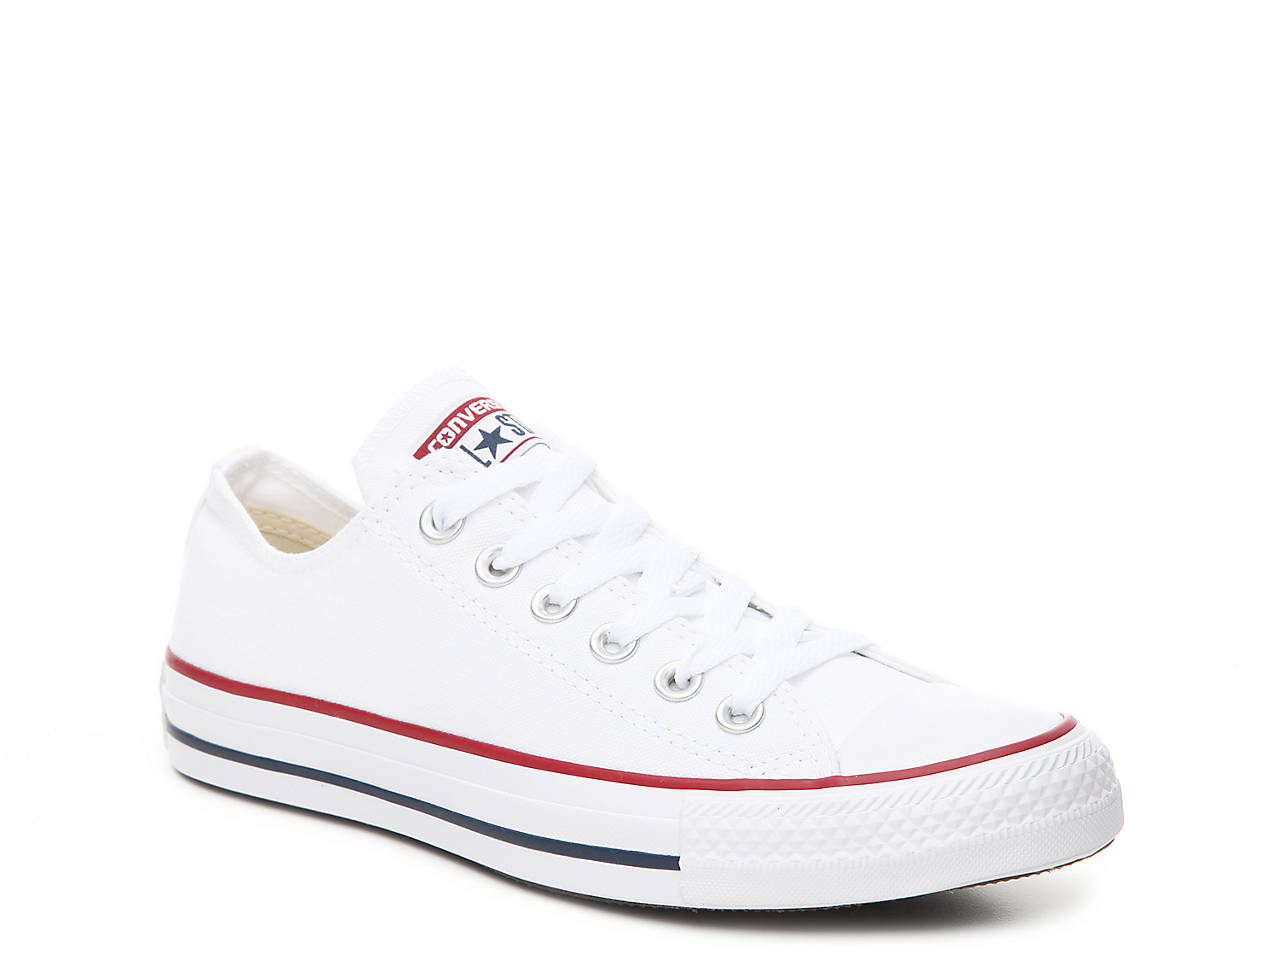 07d6fc49ddcc Converse All-Star High Tops   Sneakers